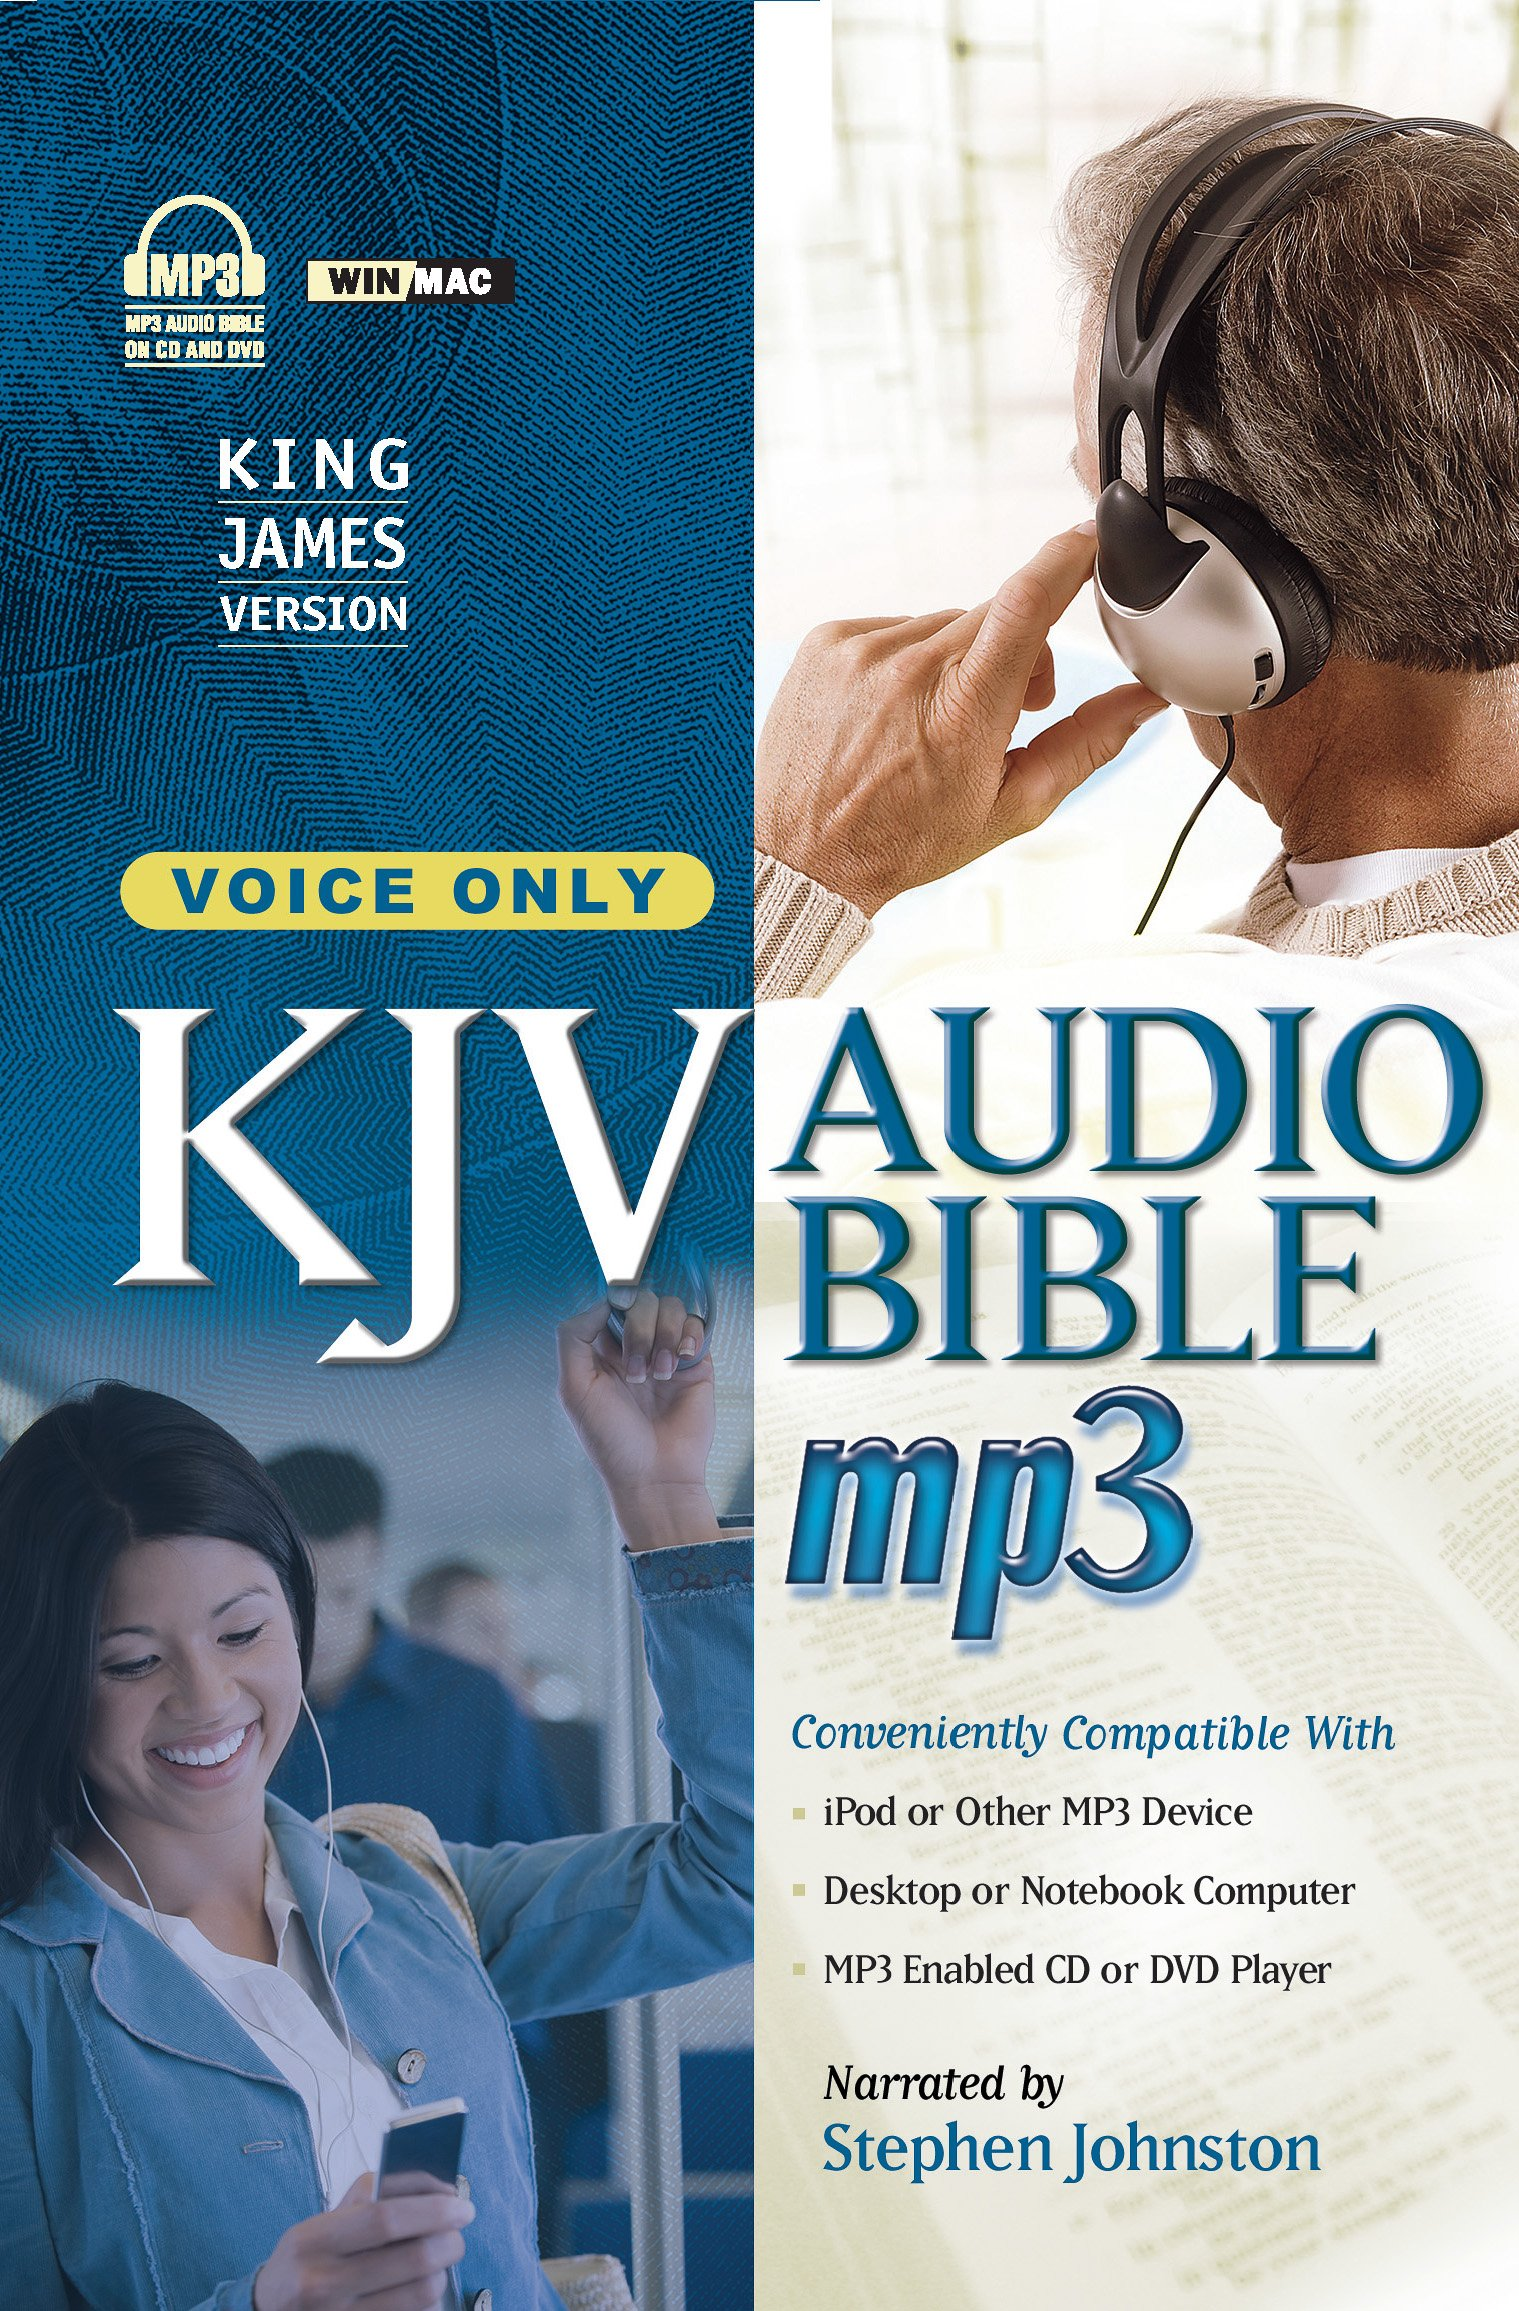 KJV Audio Bible